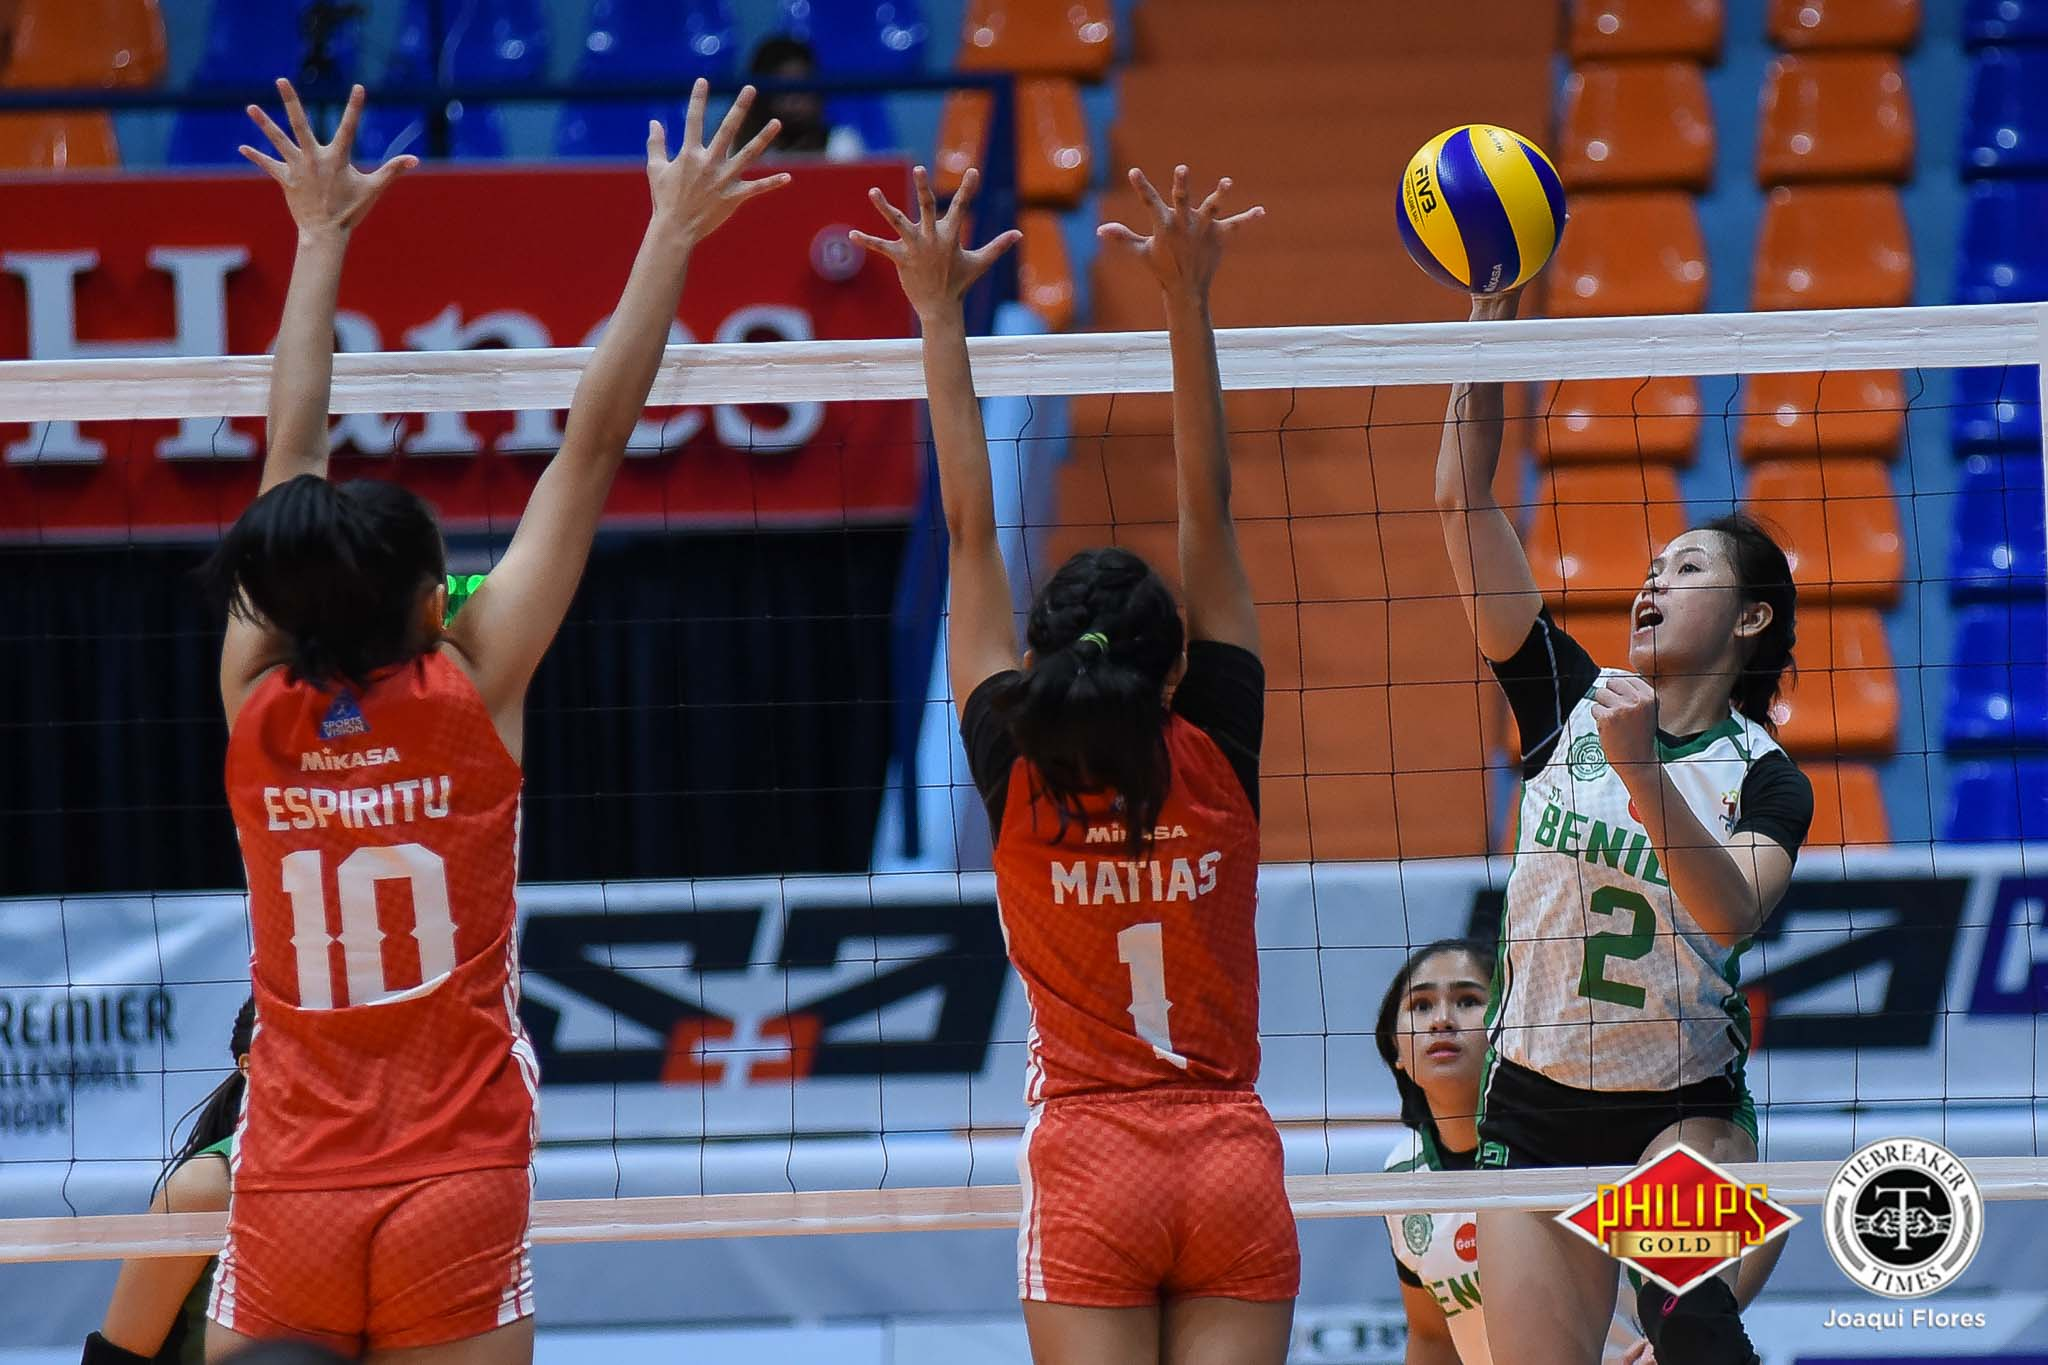 Tiebreaker Times Saint Benilde earns first win in gritty San Beda encounter CSB News PVL SBC Volleyball  San Beda Women's Volleyball Saint Benilde Women's Volleyball Nieza Viray Nemesio Gavino Melanie Torres Marites Pablo Klarissa Abriam Jieziela Viray Jewel Lai Jerry Yee 2018 PVL Women's Collegiate Conference 2018 PVL Season